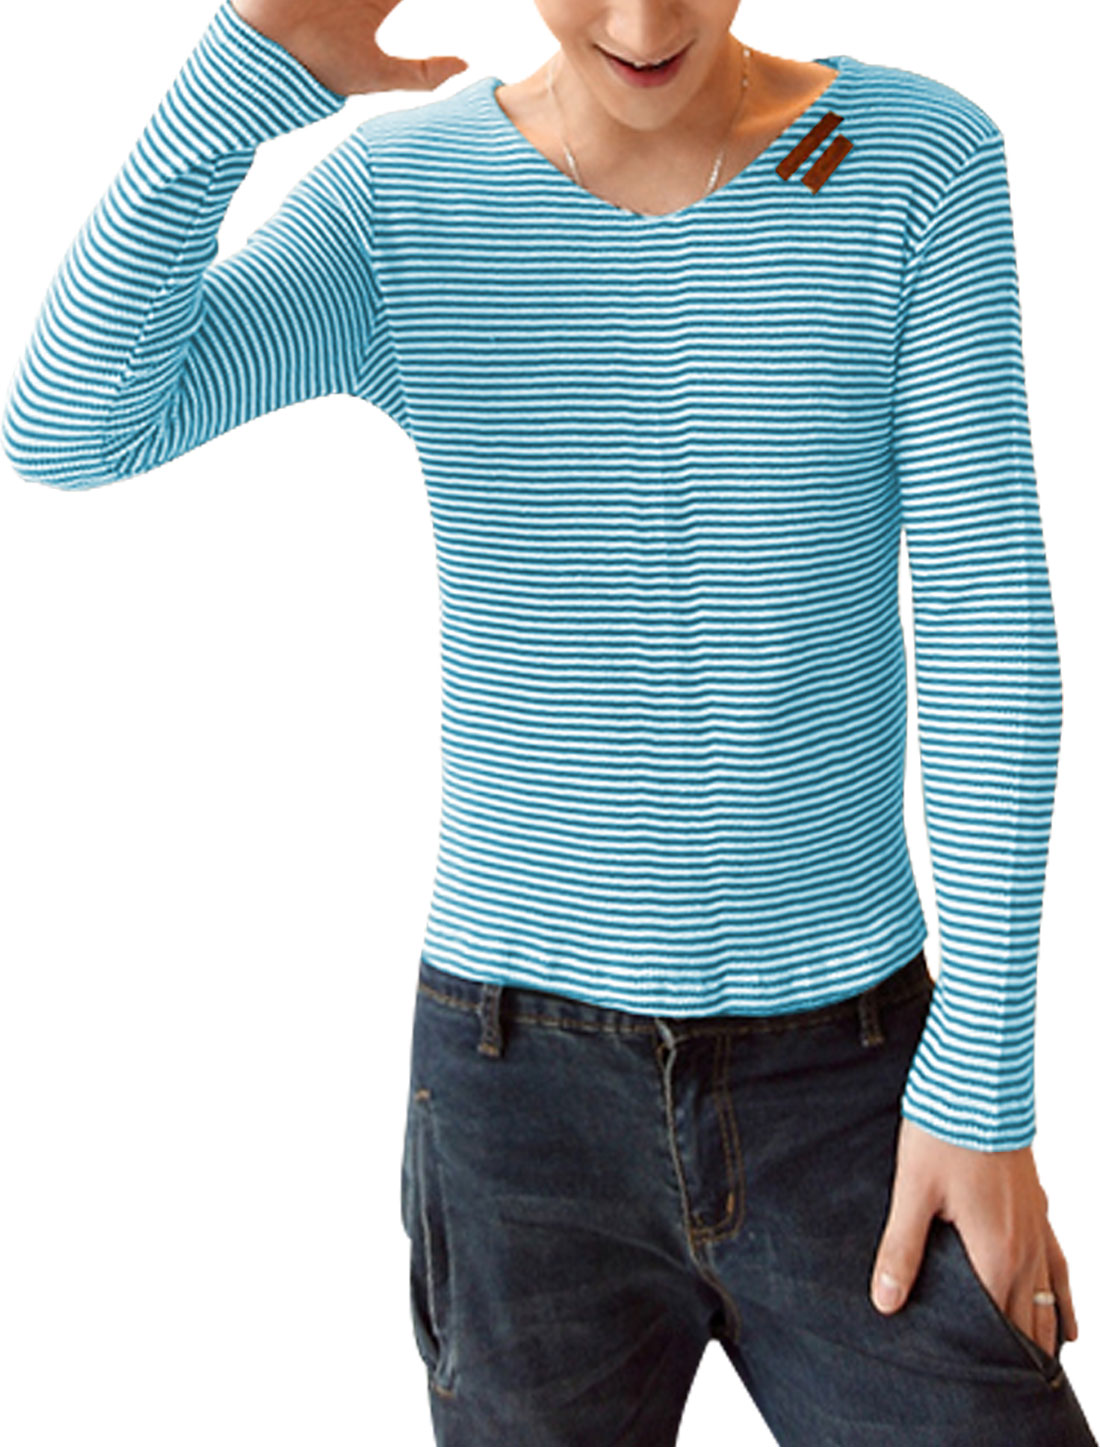 Men Long Sleeve Stripes Pattern Stretchy Slim Fit Top Shirt Light Blue White S